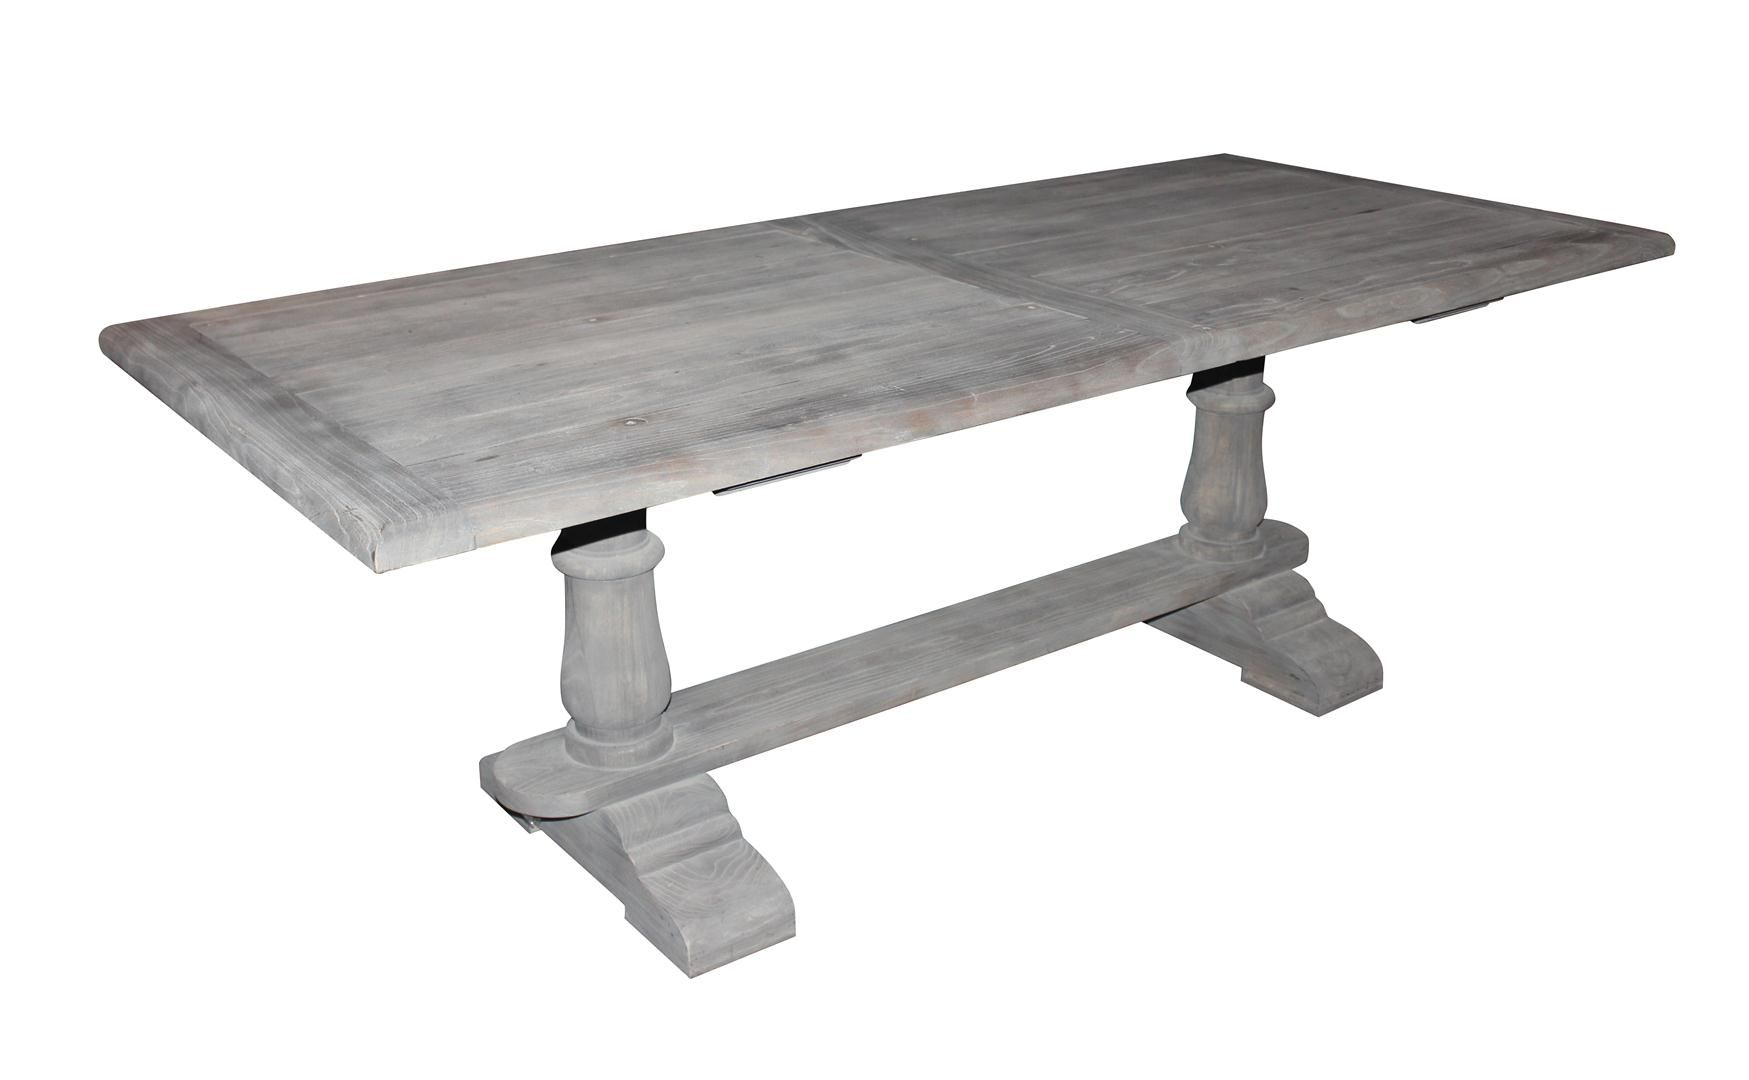 solid wood dining table with gray washed out finish | passion for